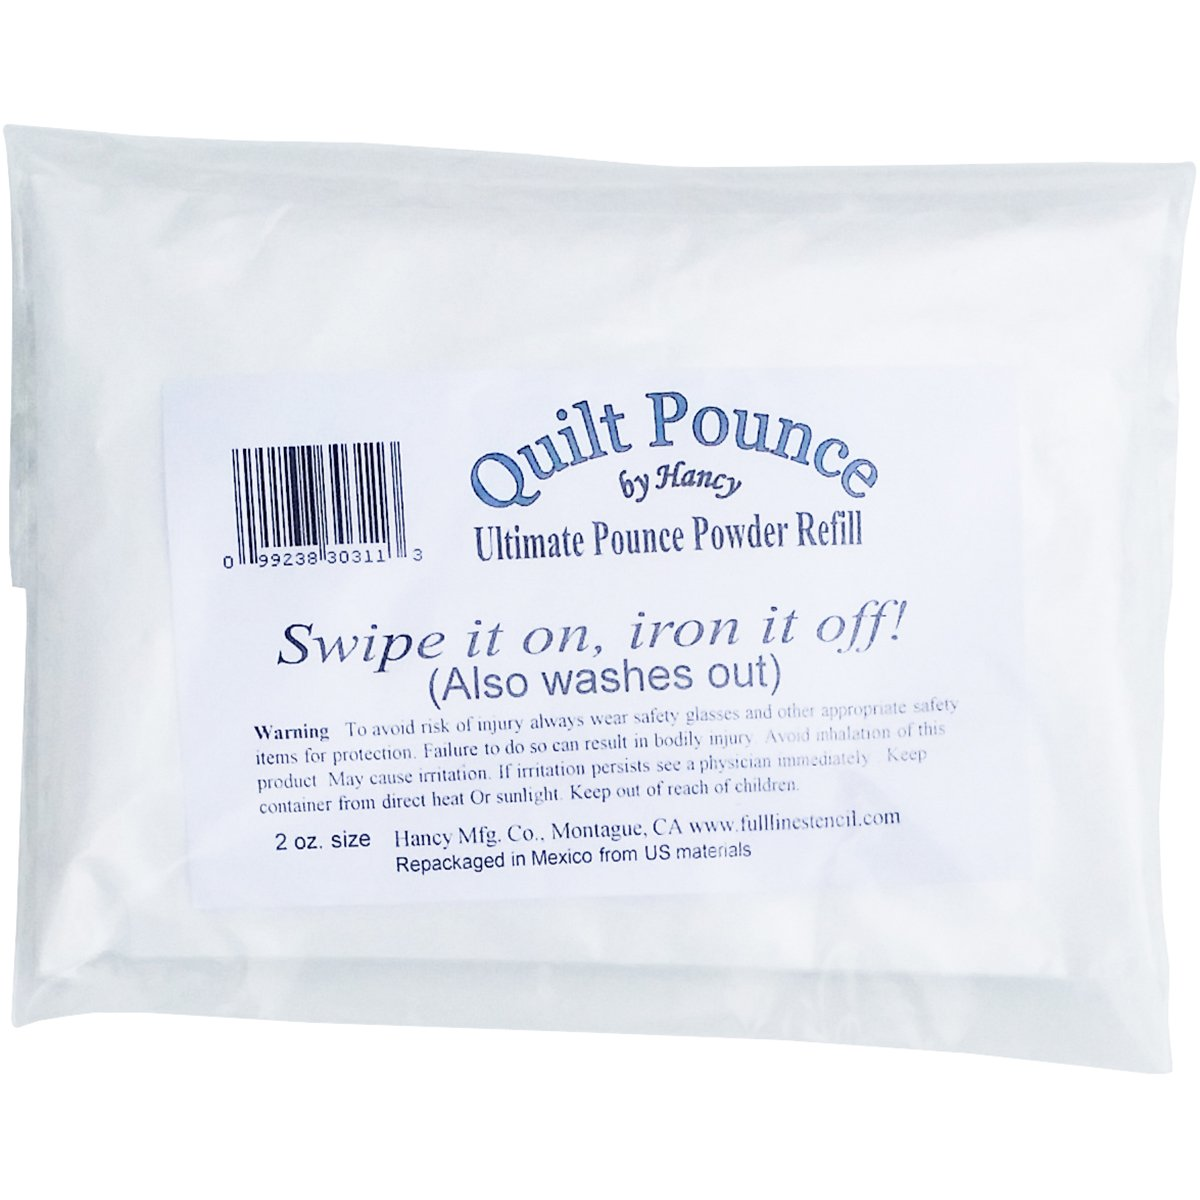 Brand New Ultimate Quilt Pounce Chalk Refill -2oz White Brand New by Hancy MFG.